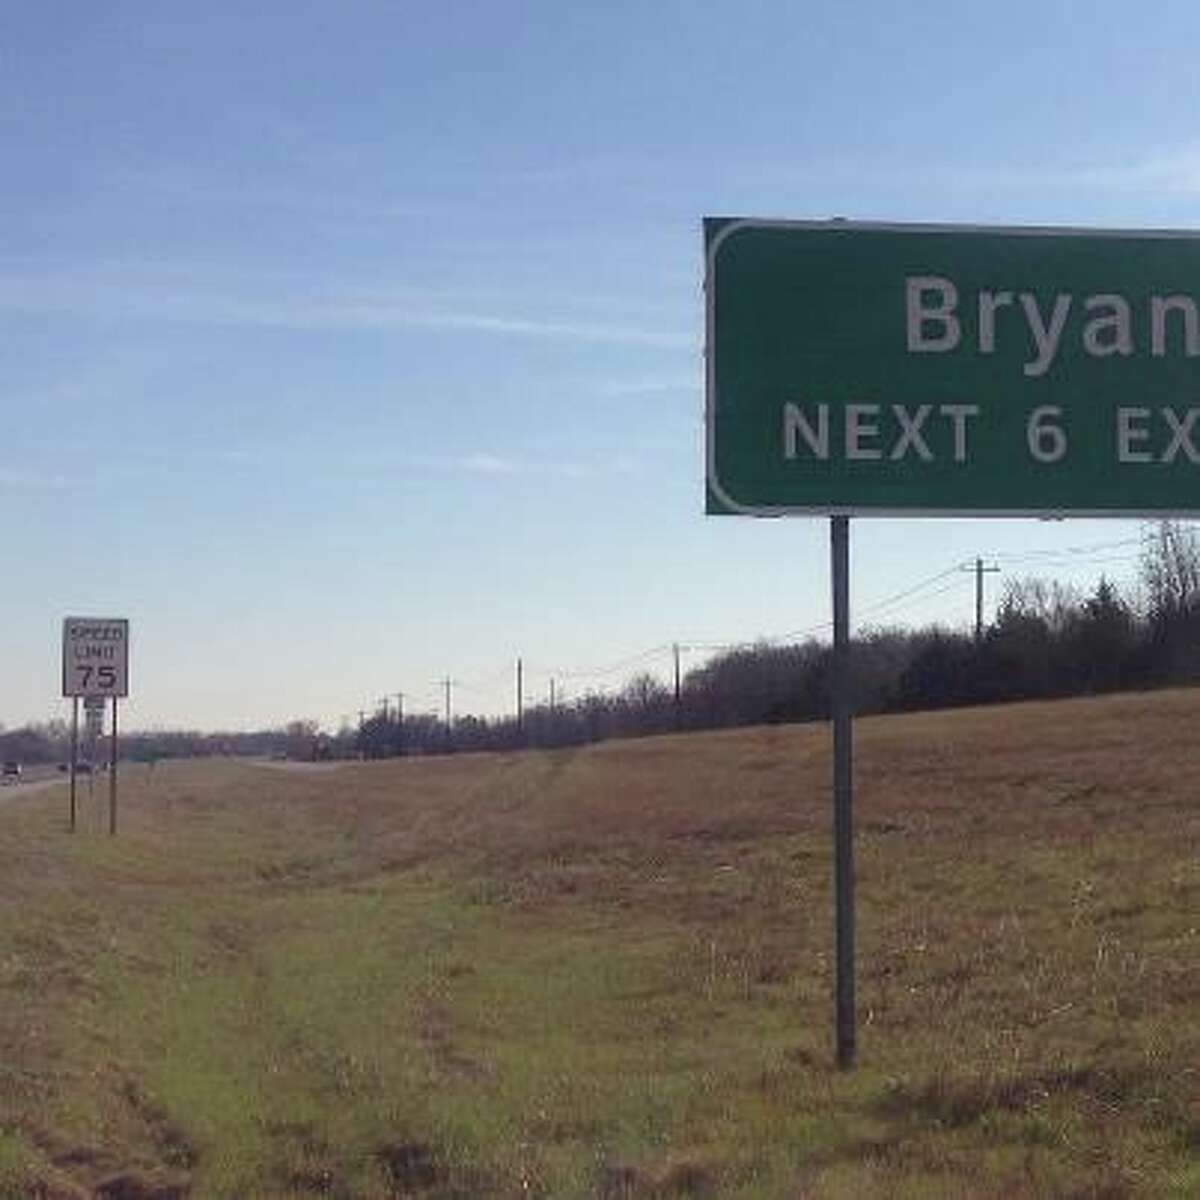 The pace of life has sped up a notch in Bryan-College Station as state highway officials install new 75 mph speed limit signs on Texas 6.